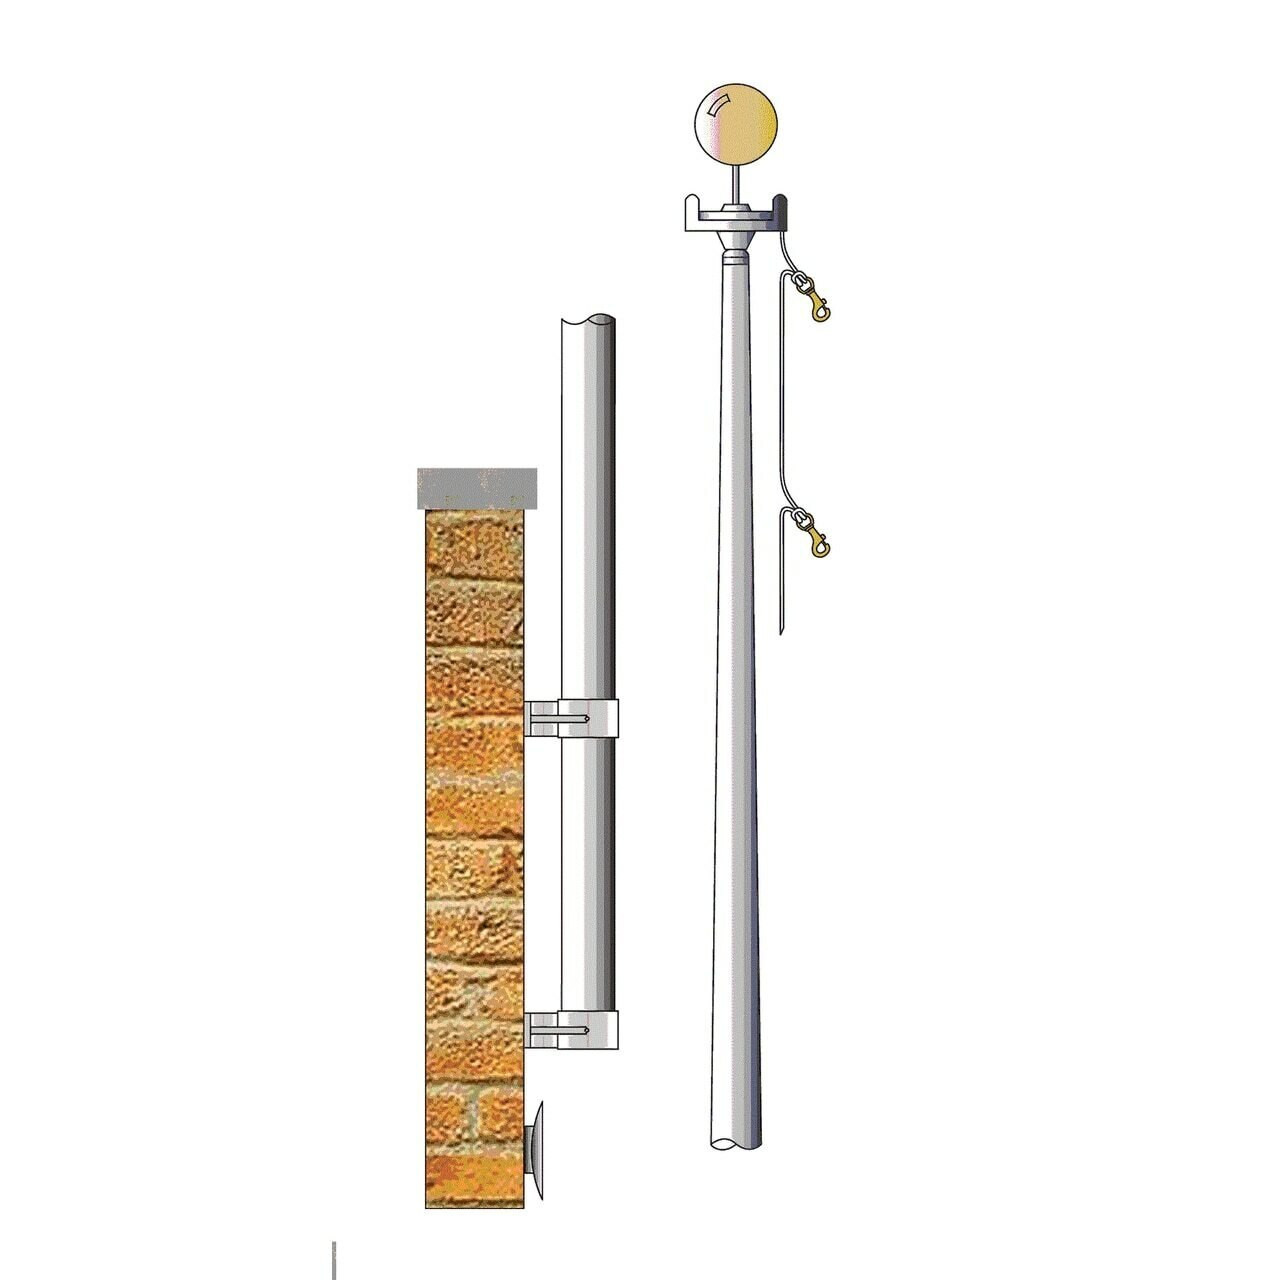 10 Vertical Wall Mounted Flagpole EVWS10